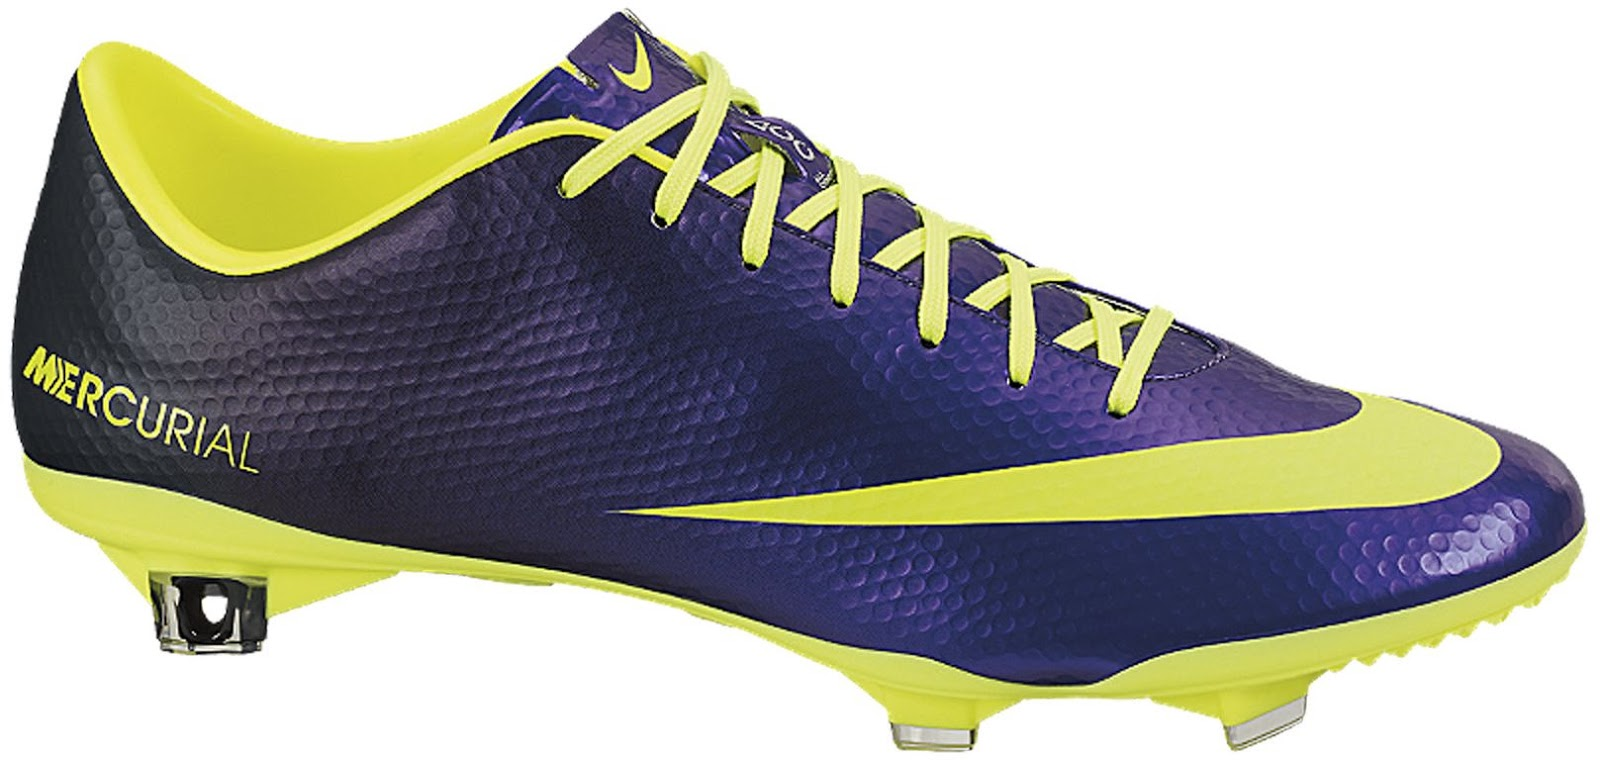 the latest nike football boots in september 2013 seputar. Black Bedroom Furniture Sets. Home Design Ideas